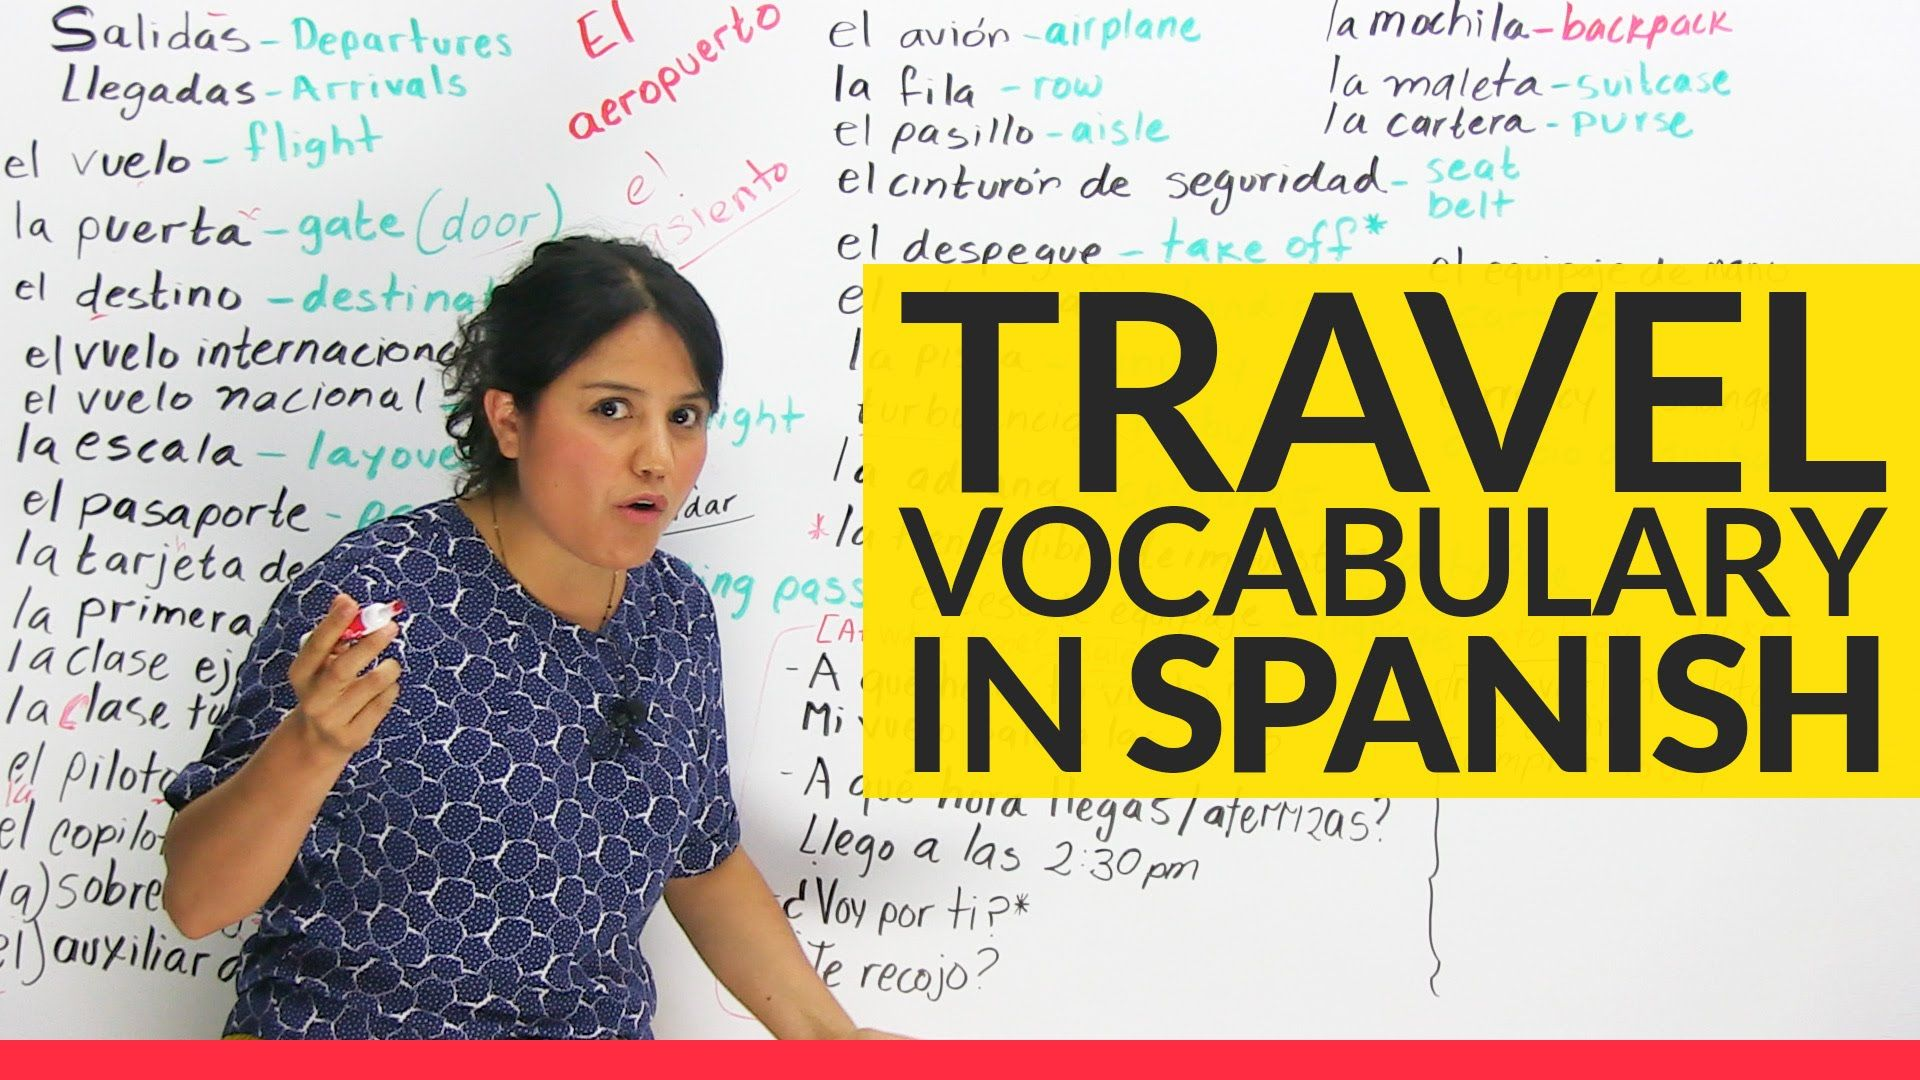 The Top Travel Vocabulary In Spanish